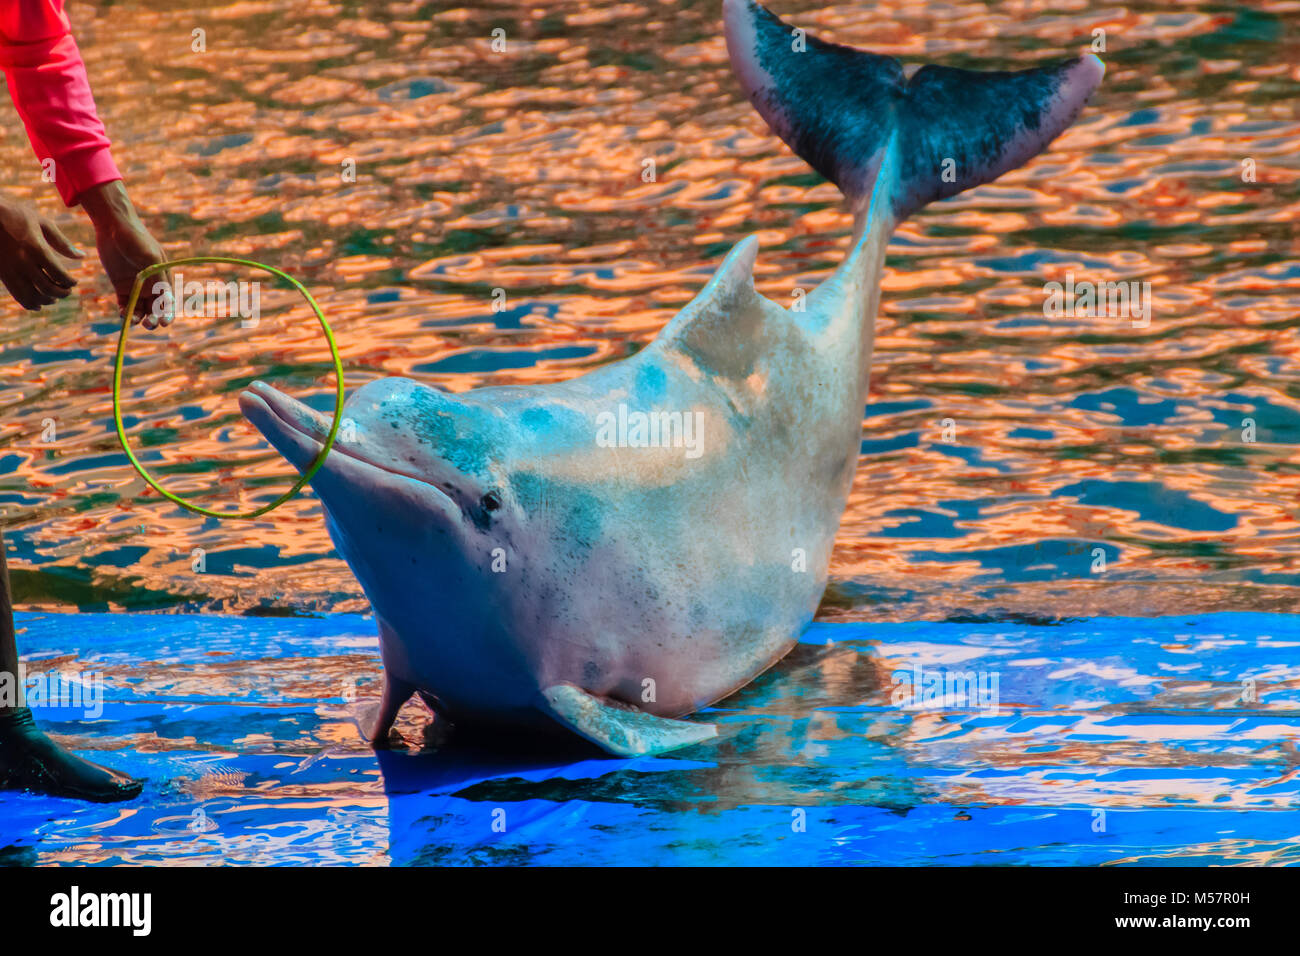 Cute Indo-Pacific humpback dolphin (Sousa chinensis) ,or Pink dolphin, or Chinese white dolphin is playing hoop - Stock Image